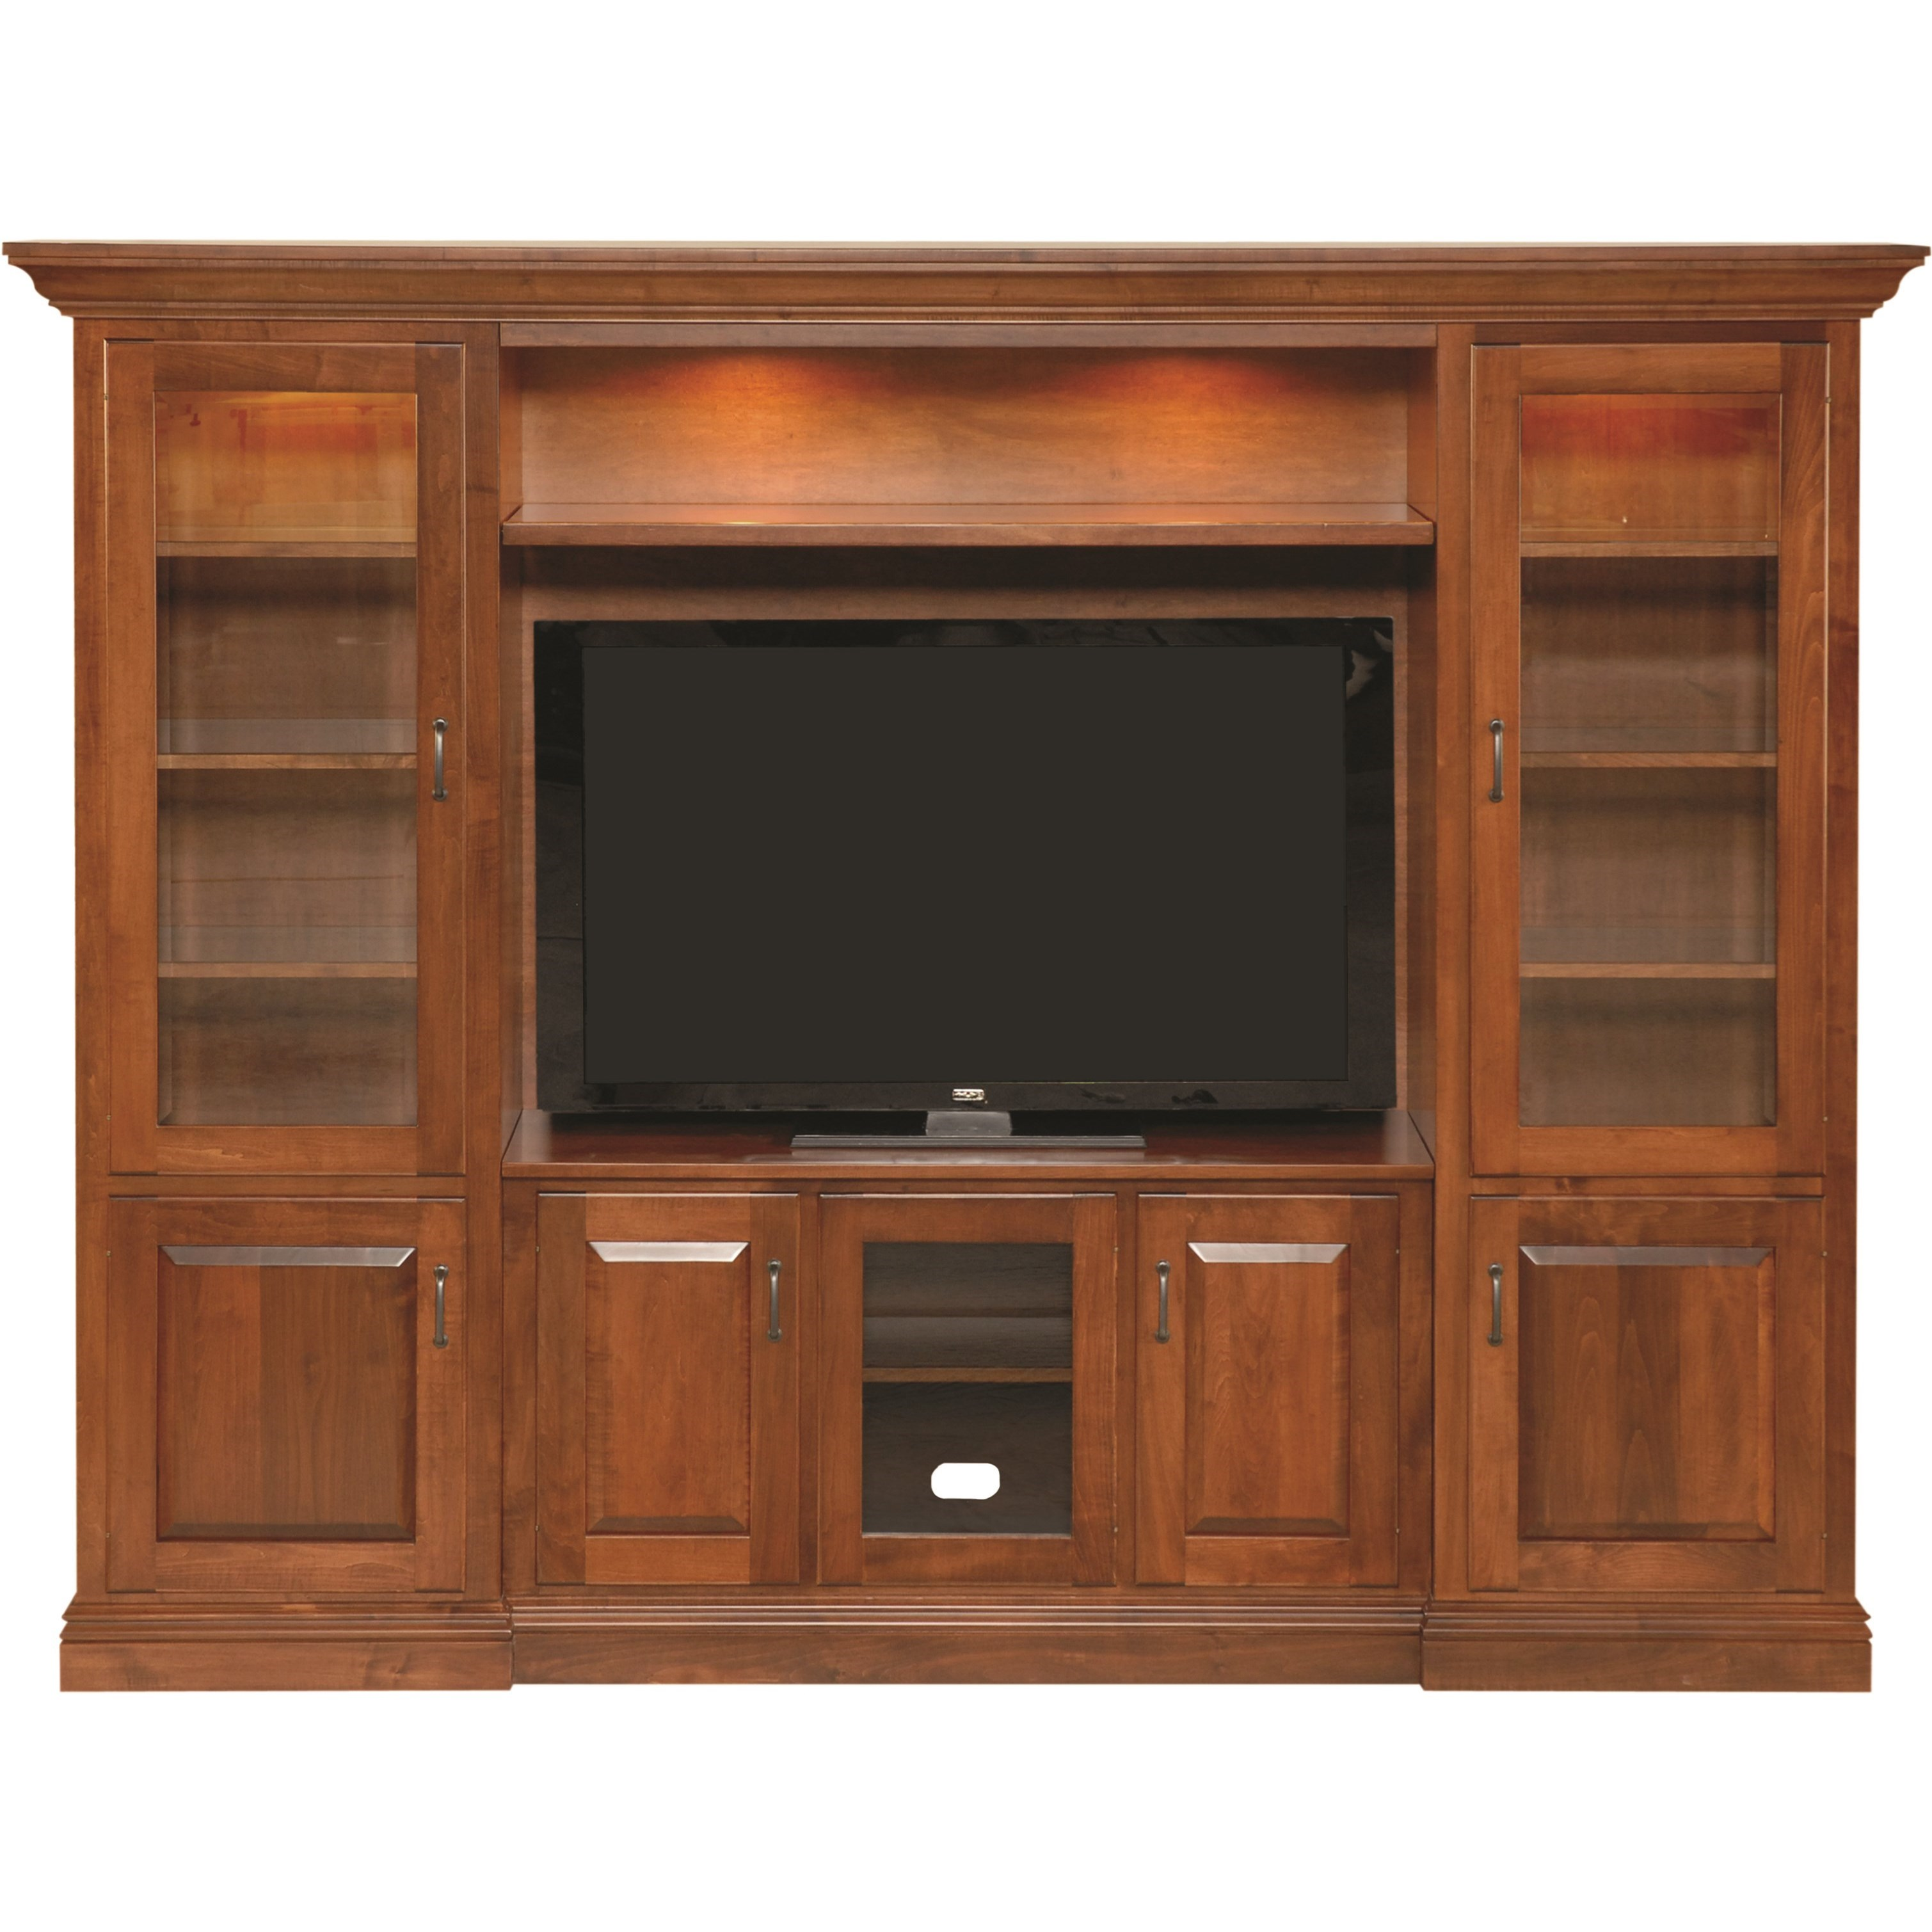 Entertainment Customizable TV Wall Unit by INTEG Wood Products at Saugerties Furniture Mart